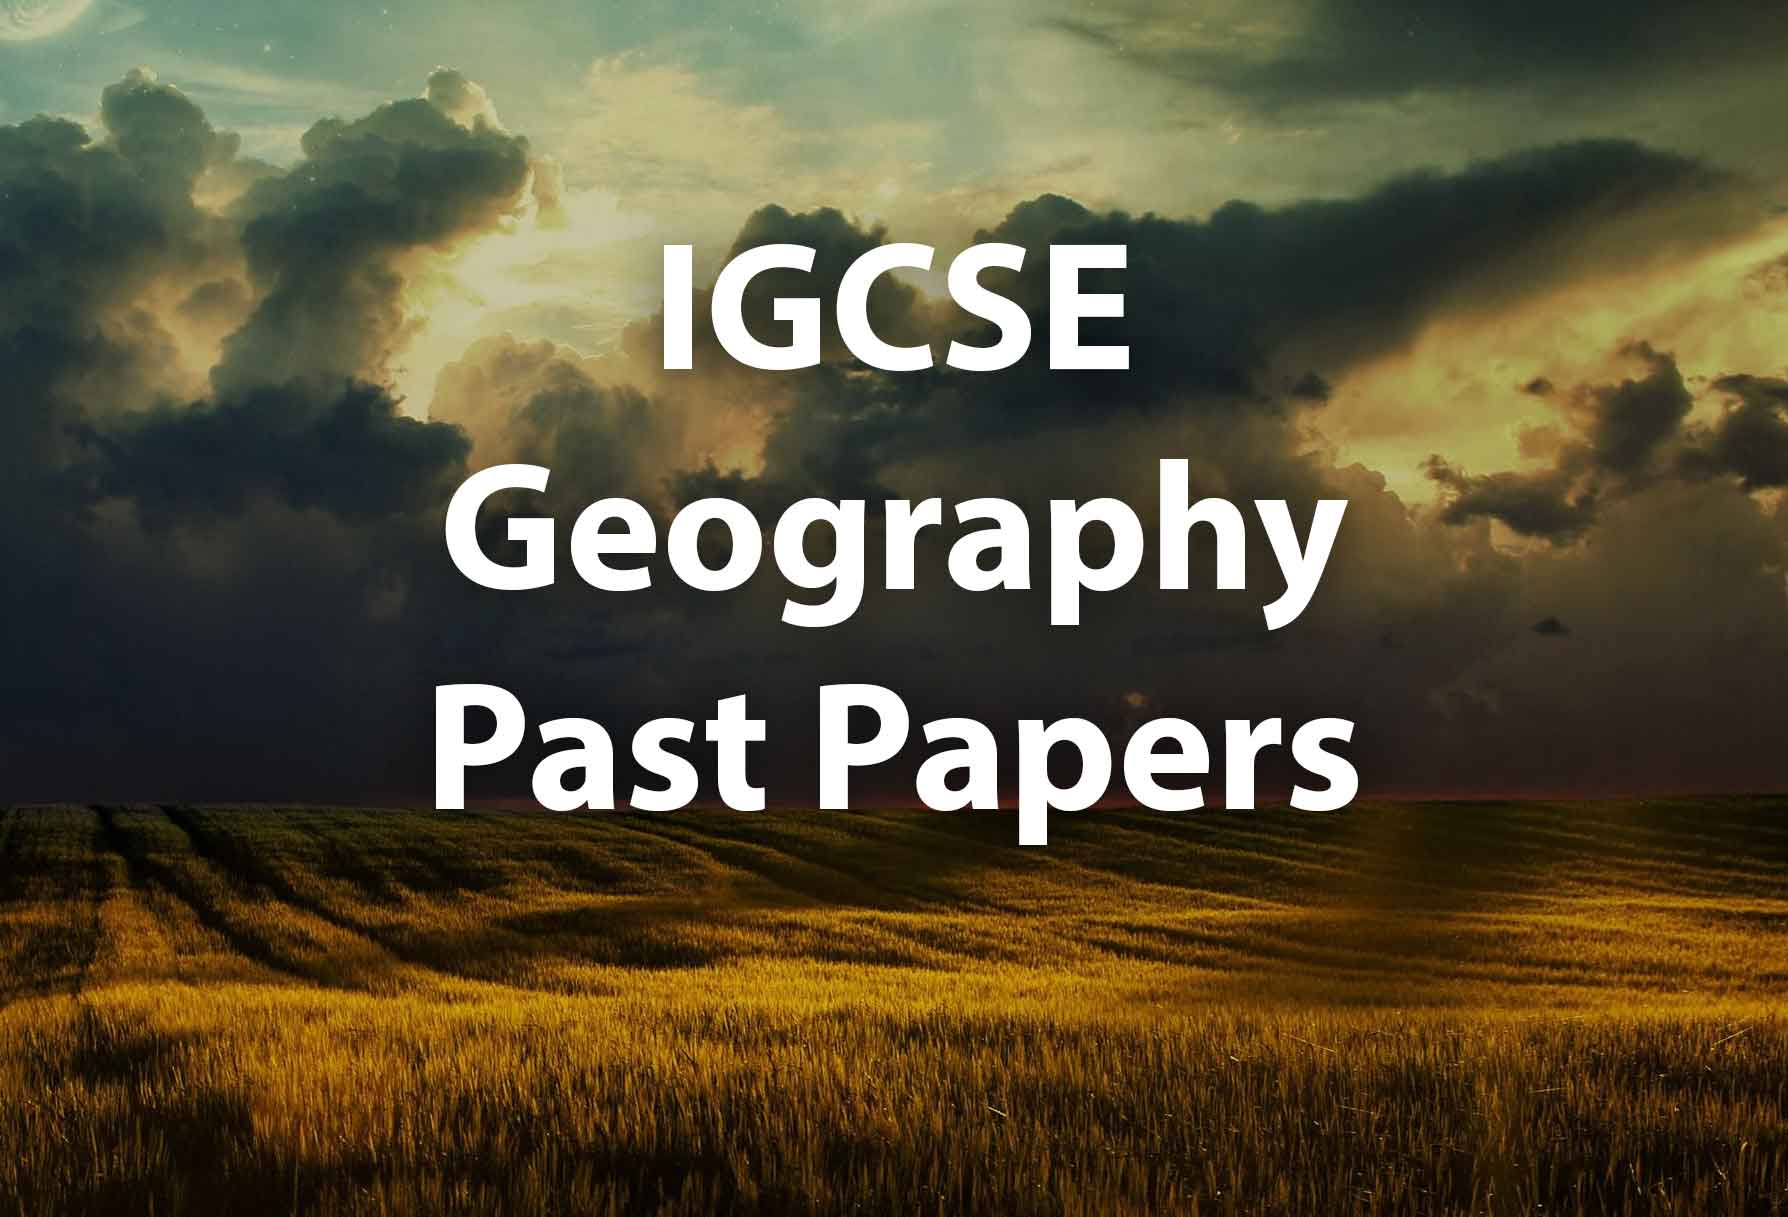 IGCSE Geogrpahy Past Papers